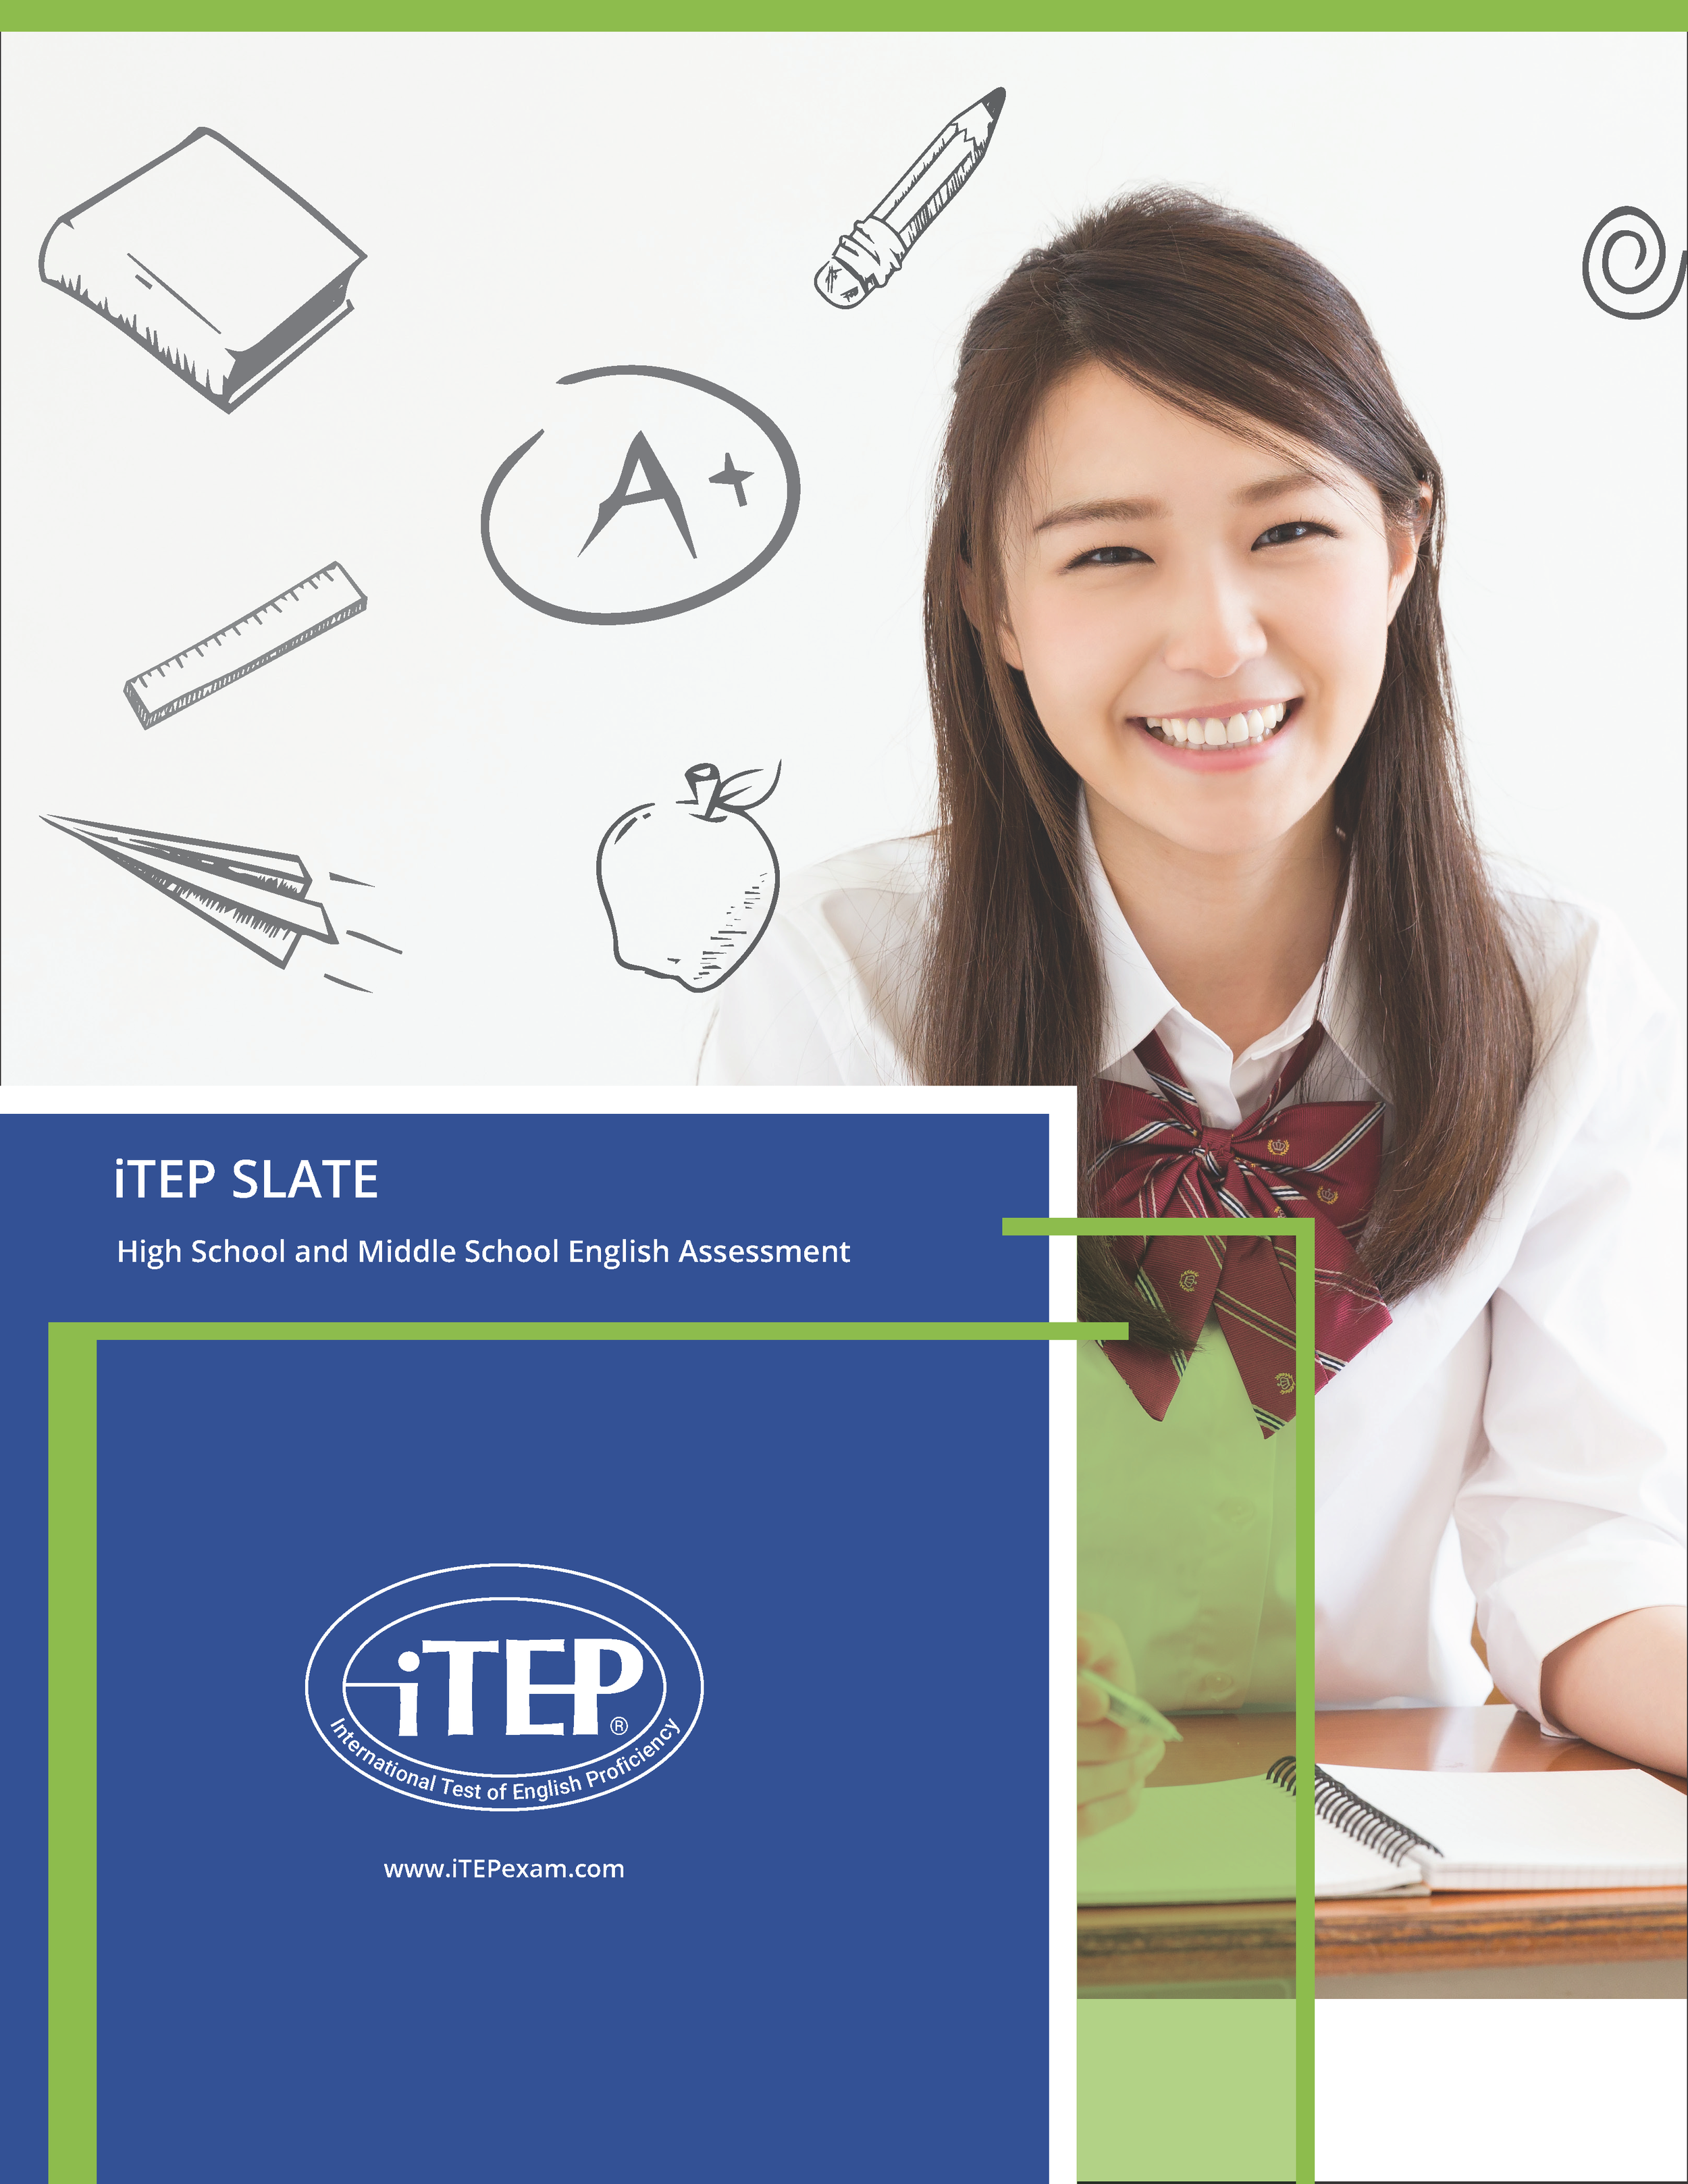 iTEP-SLATE-Booklet-1.png